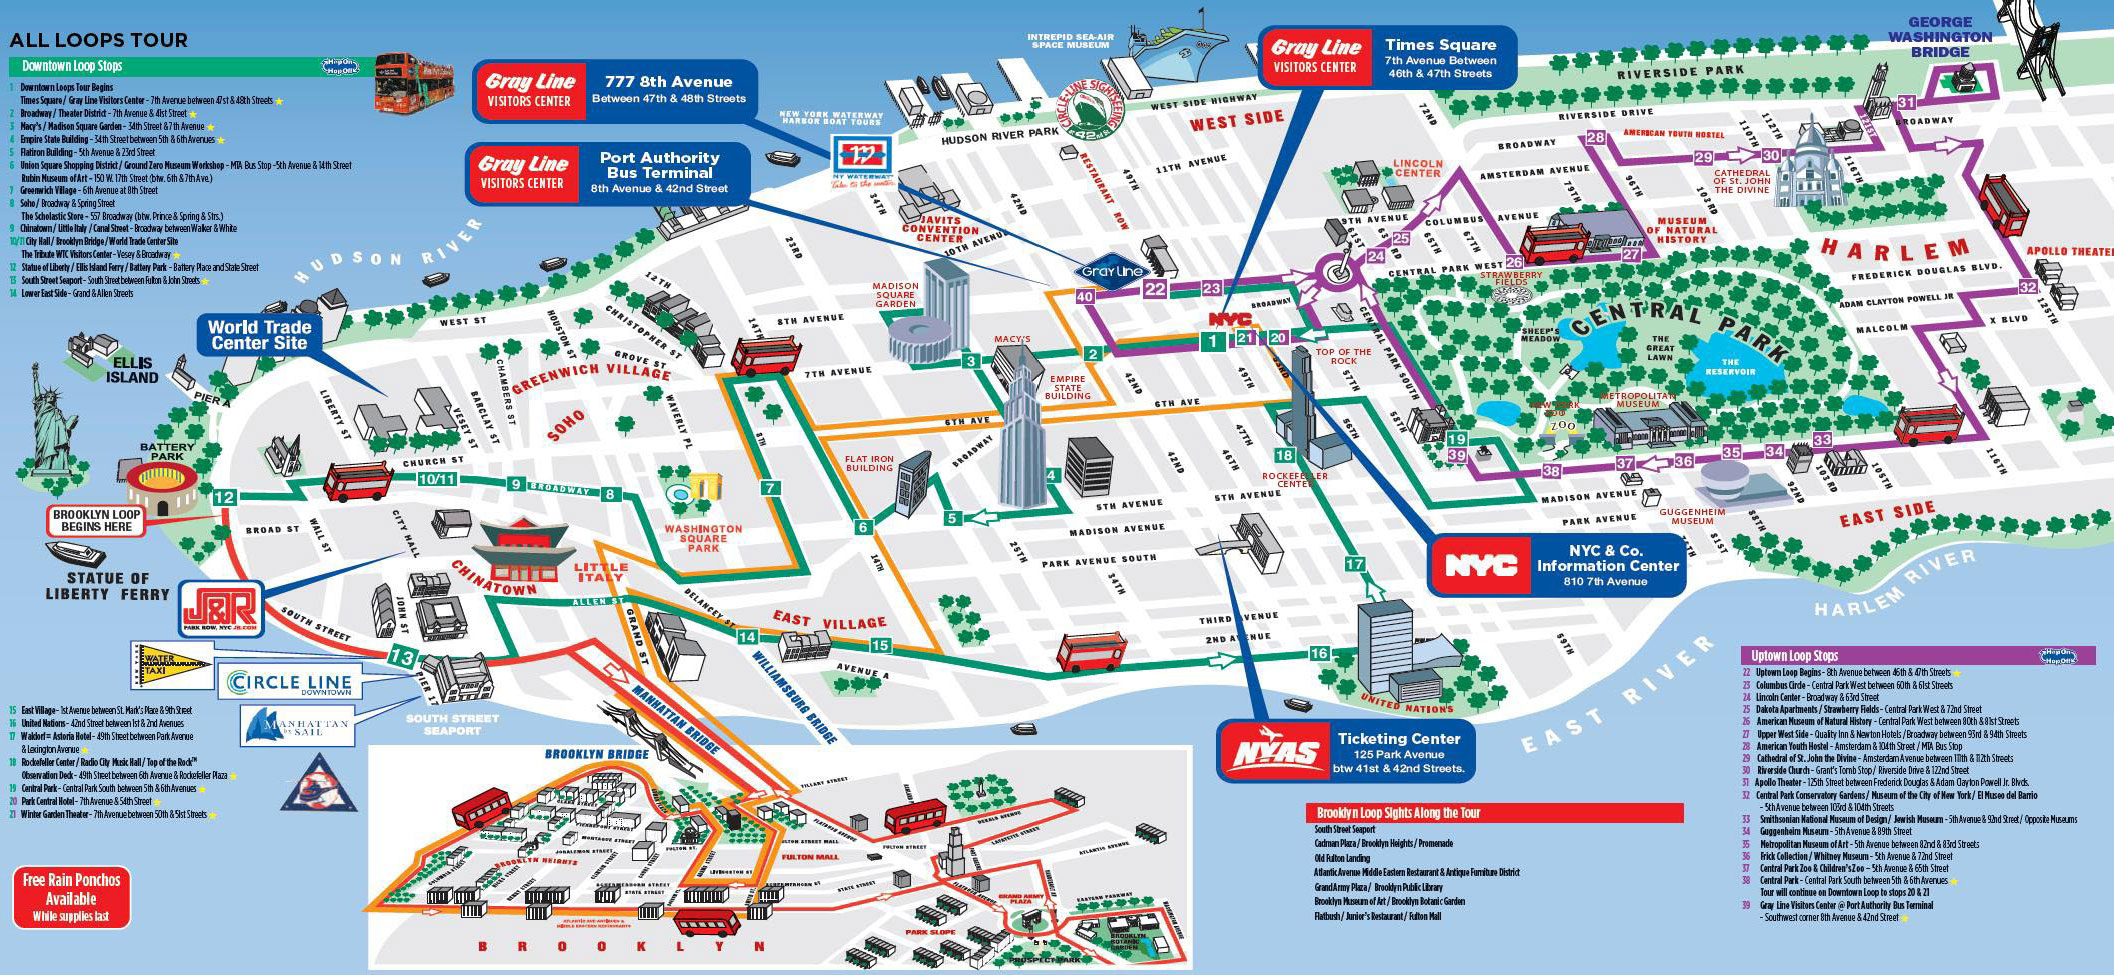 New York City Hop-On Hop-Off Tour Map